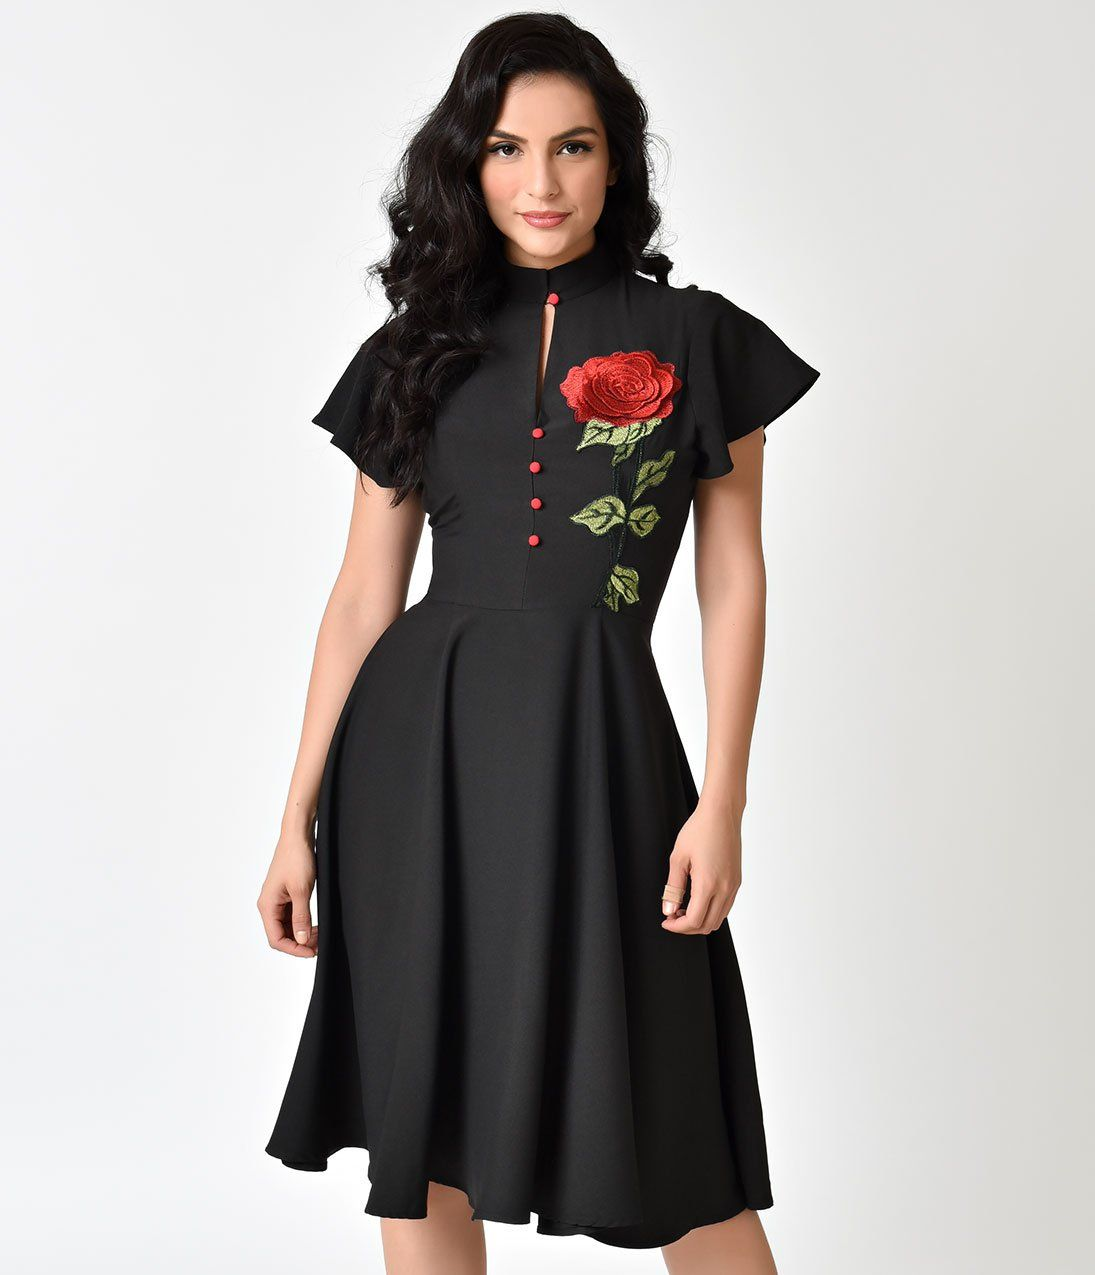 0f4586962e6 Unique Vintage 1950s Black   Embroidered Red Rose Baltimore Swing Dres